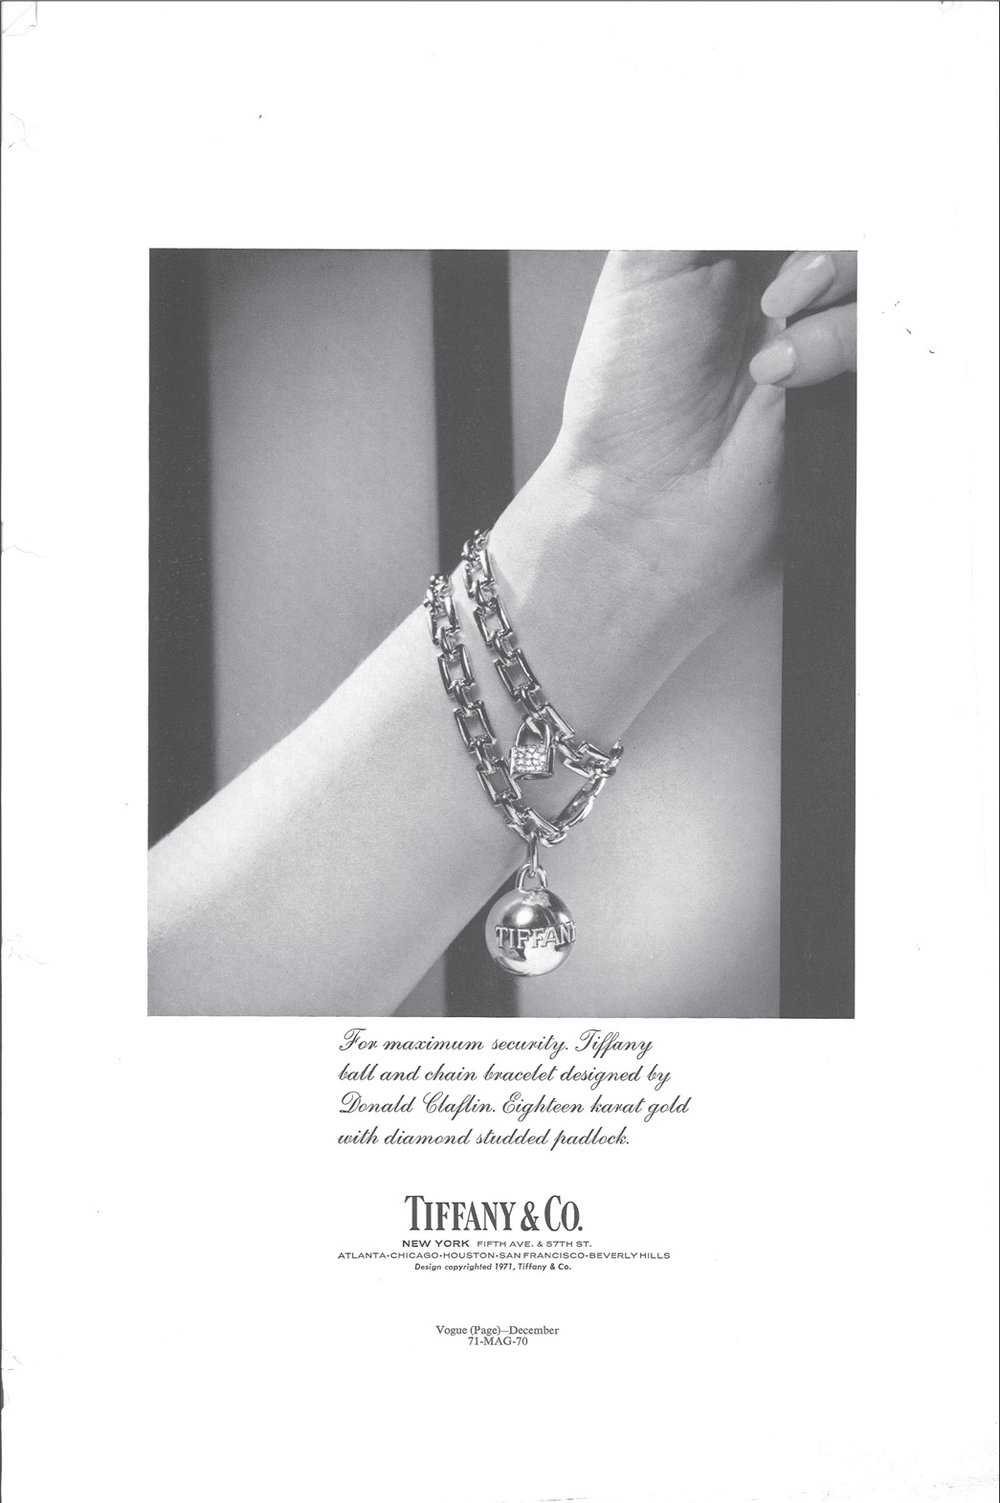 1971 ad in American Vogue; bracelet that inspired the Tiffany Hardwear collection.